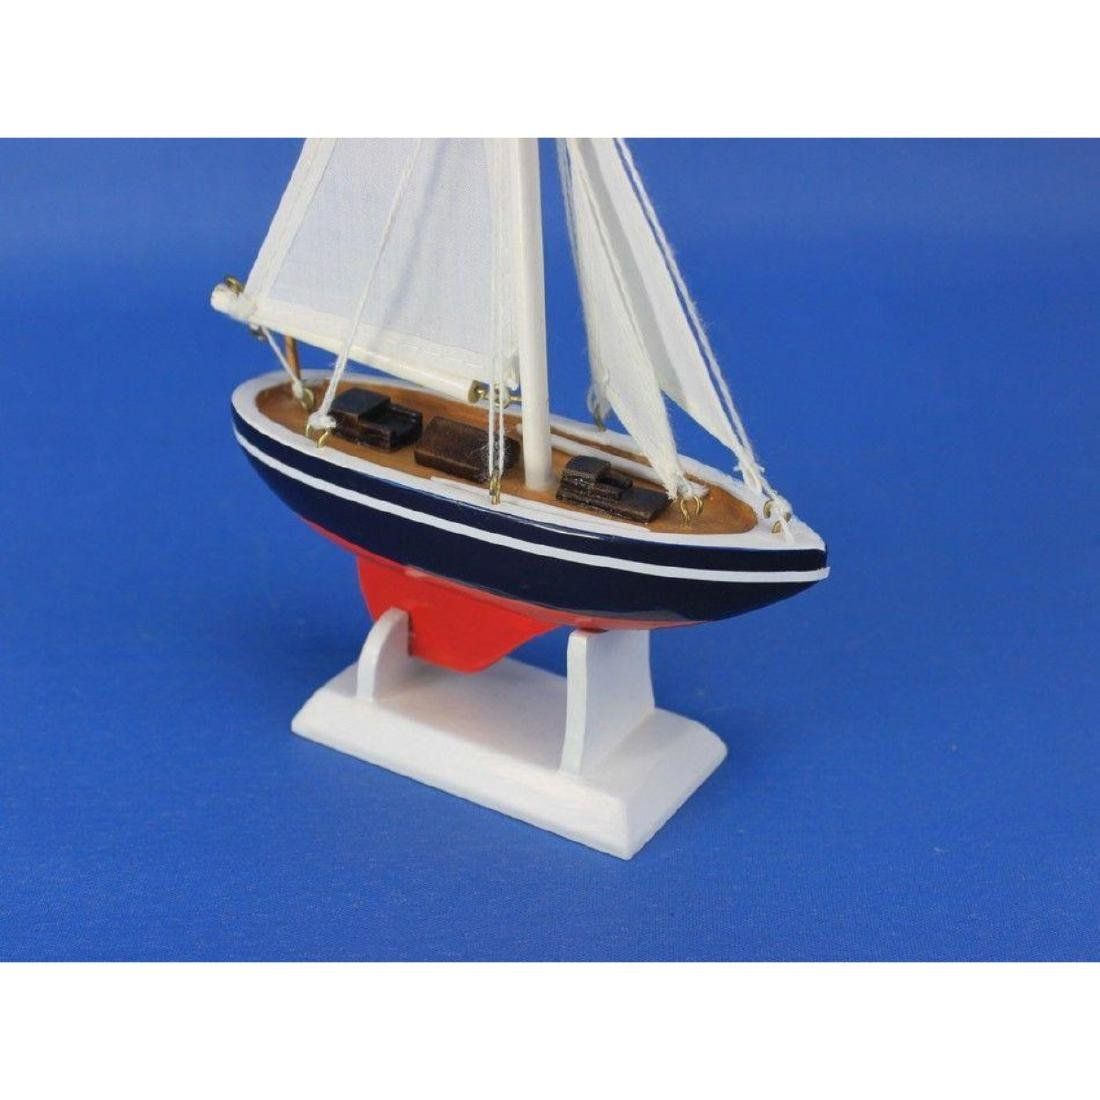 "Wooden American Sailer Model Sailboat Decoration 9"" - 2"